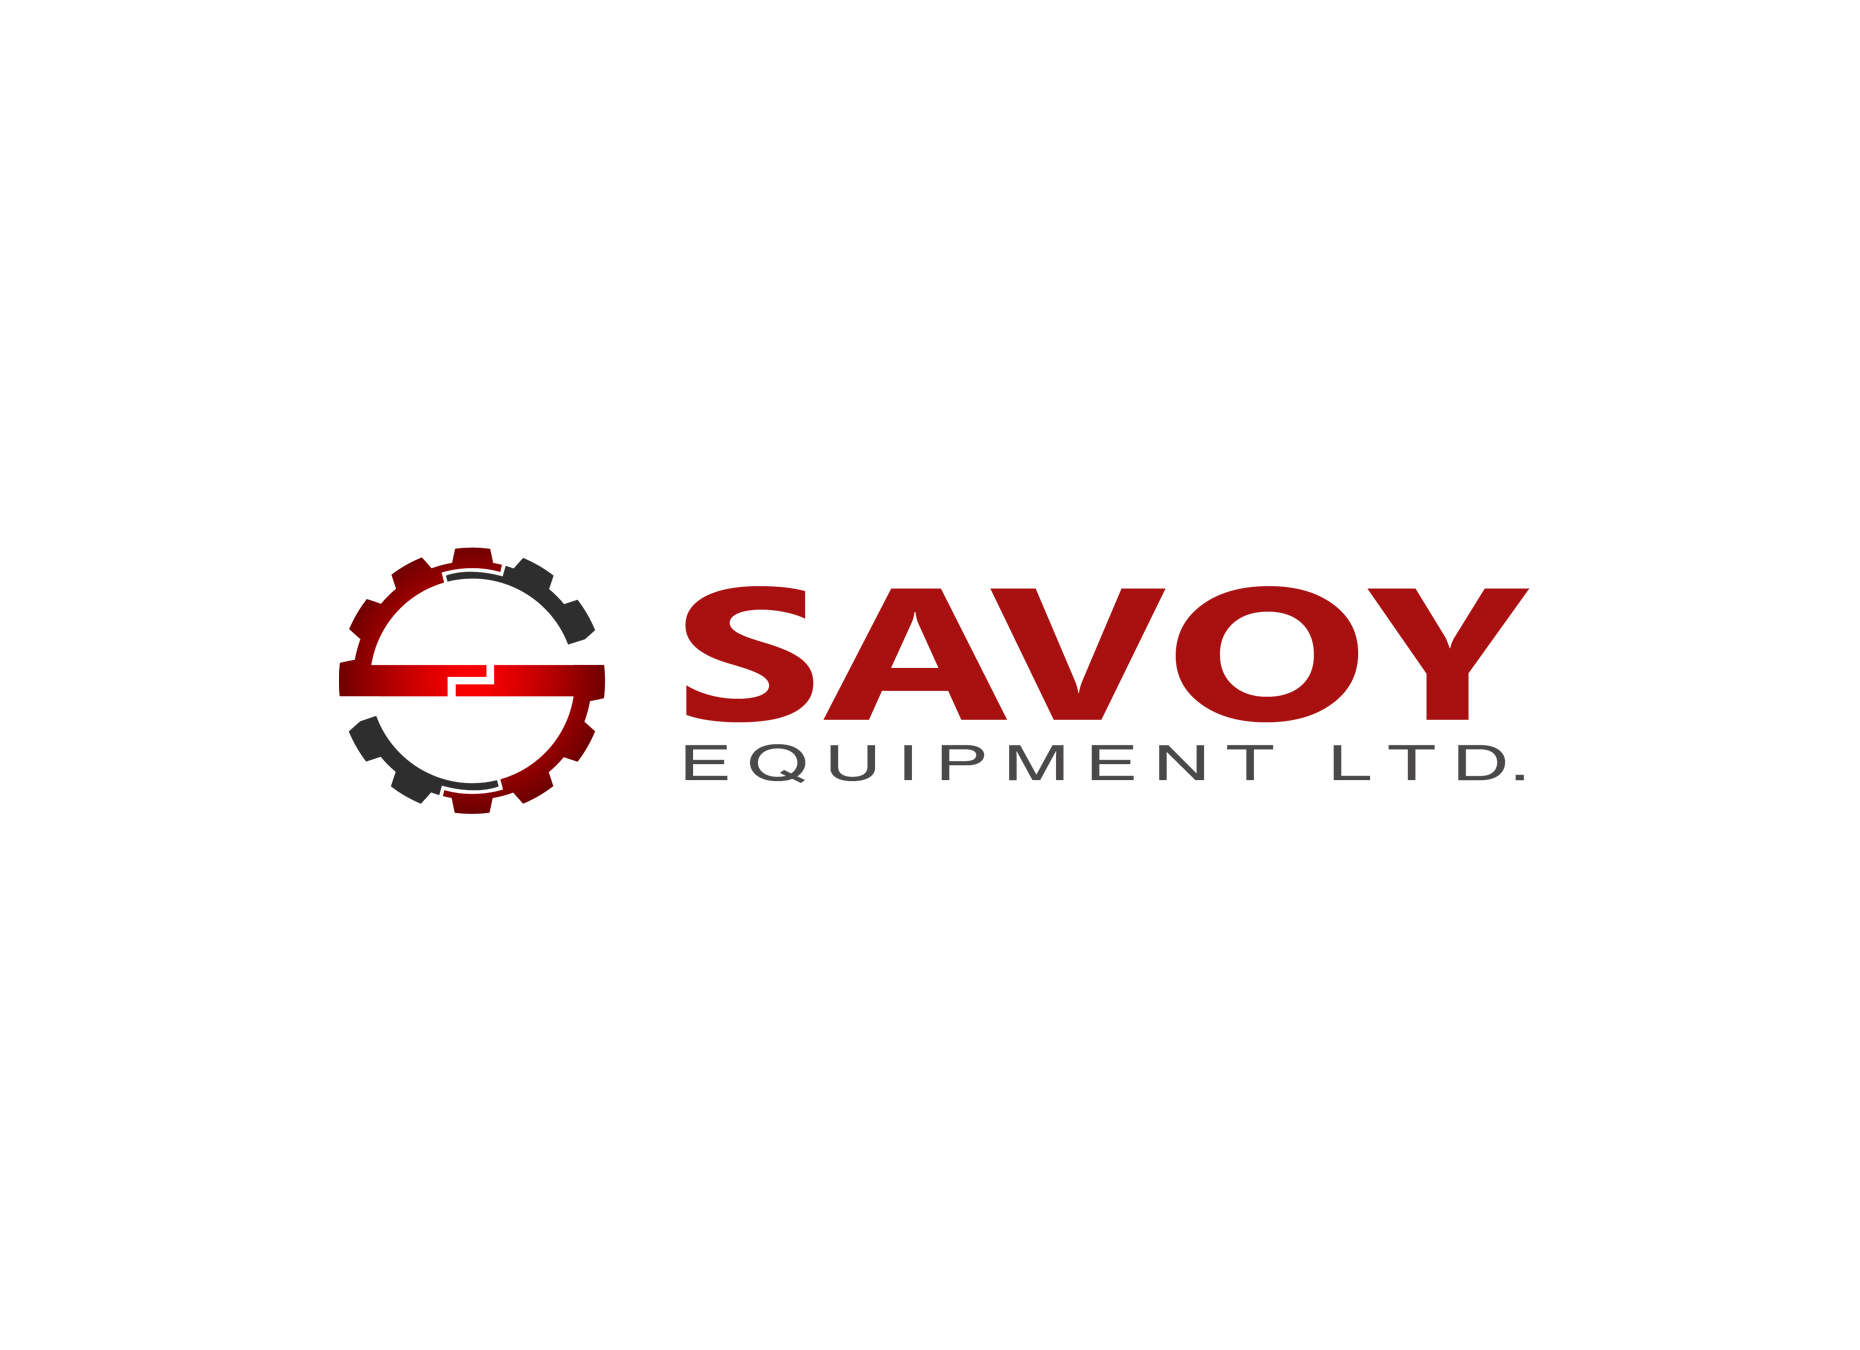 Logo Design by omARTist - Entry No. 82 in the Logo Design Contest Inspiring Logo Design for Savoy Equipment Ltd..